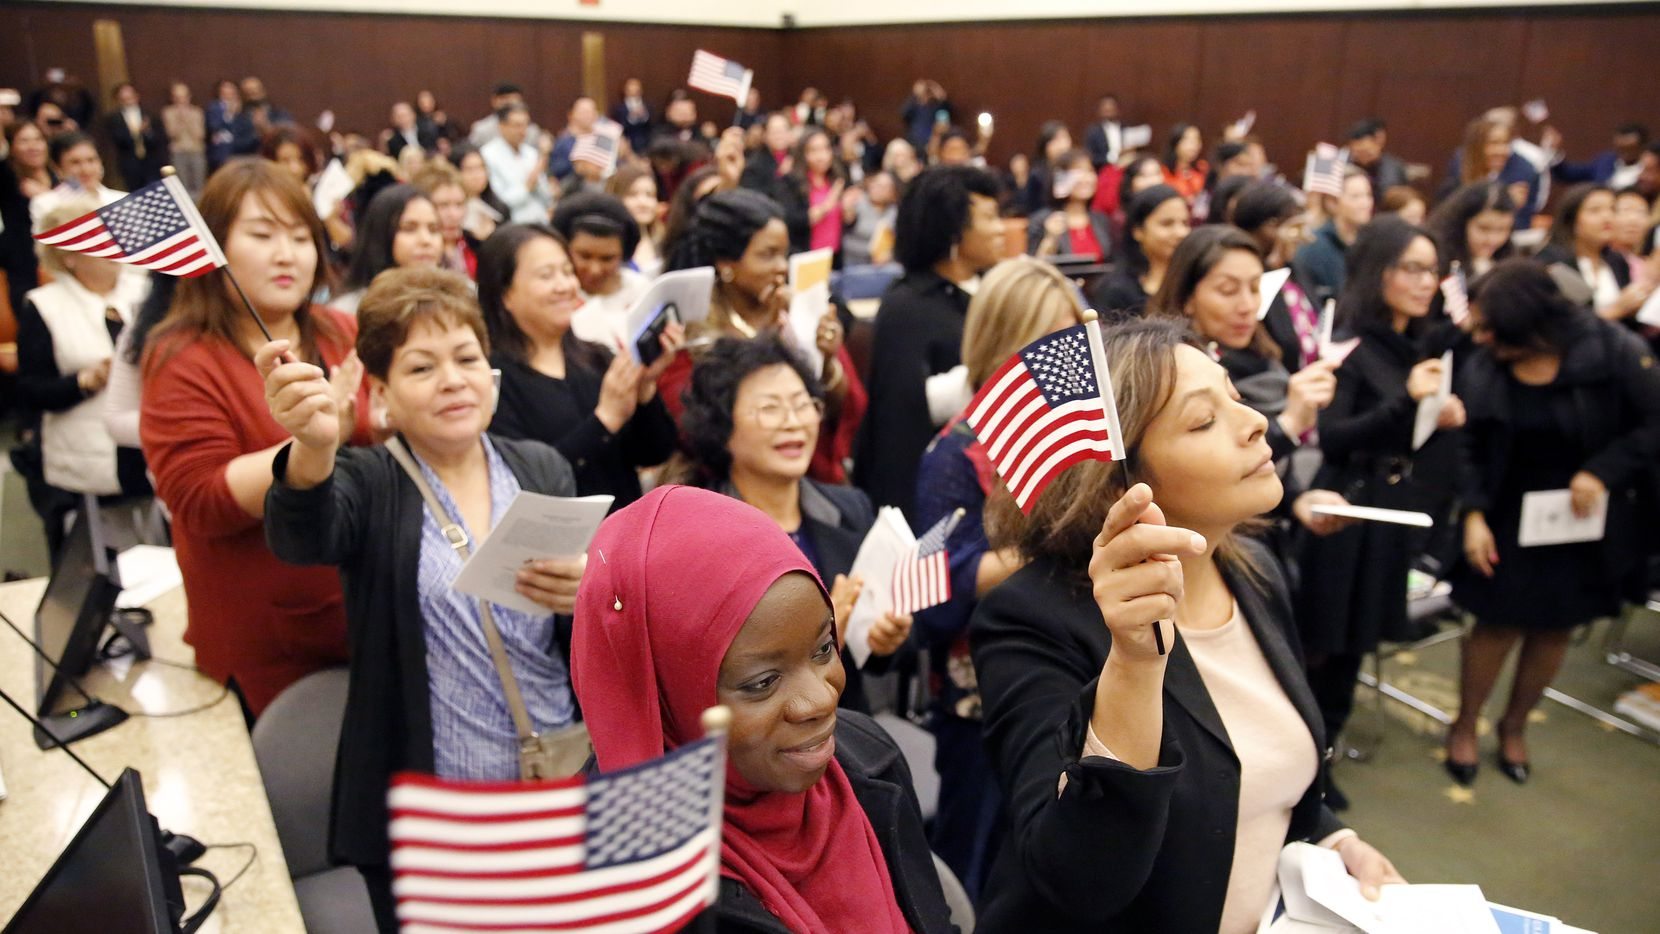 Fatimah Oritola of Nigeria (foreground) of Nigeria and others wave U.S. flags after reciting the oath of allegiance led by US Chief District Judge Barbara Lynn during a naturalization ceremony at the Earle Cabell Federal Building in Dallas, Wednesday, December 19, 2018.